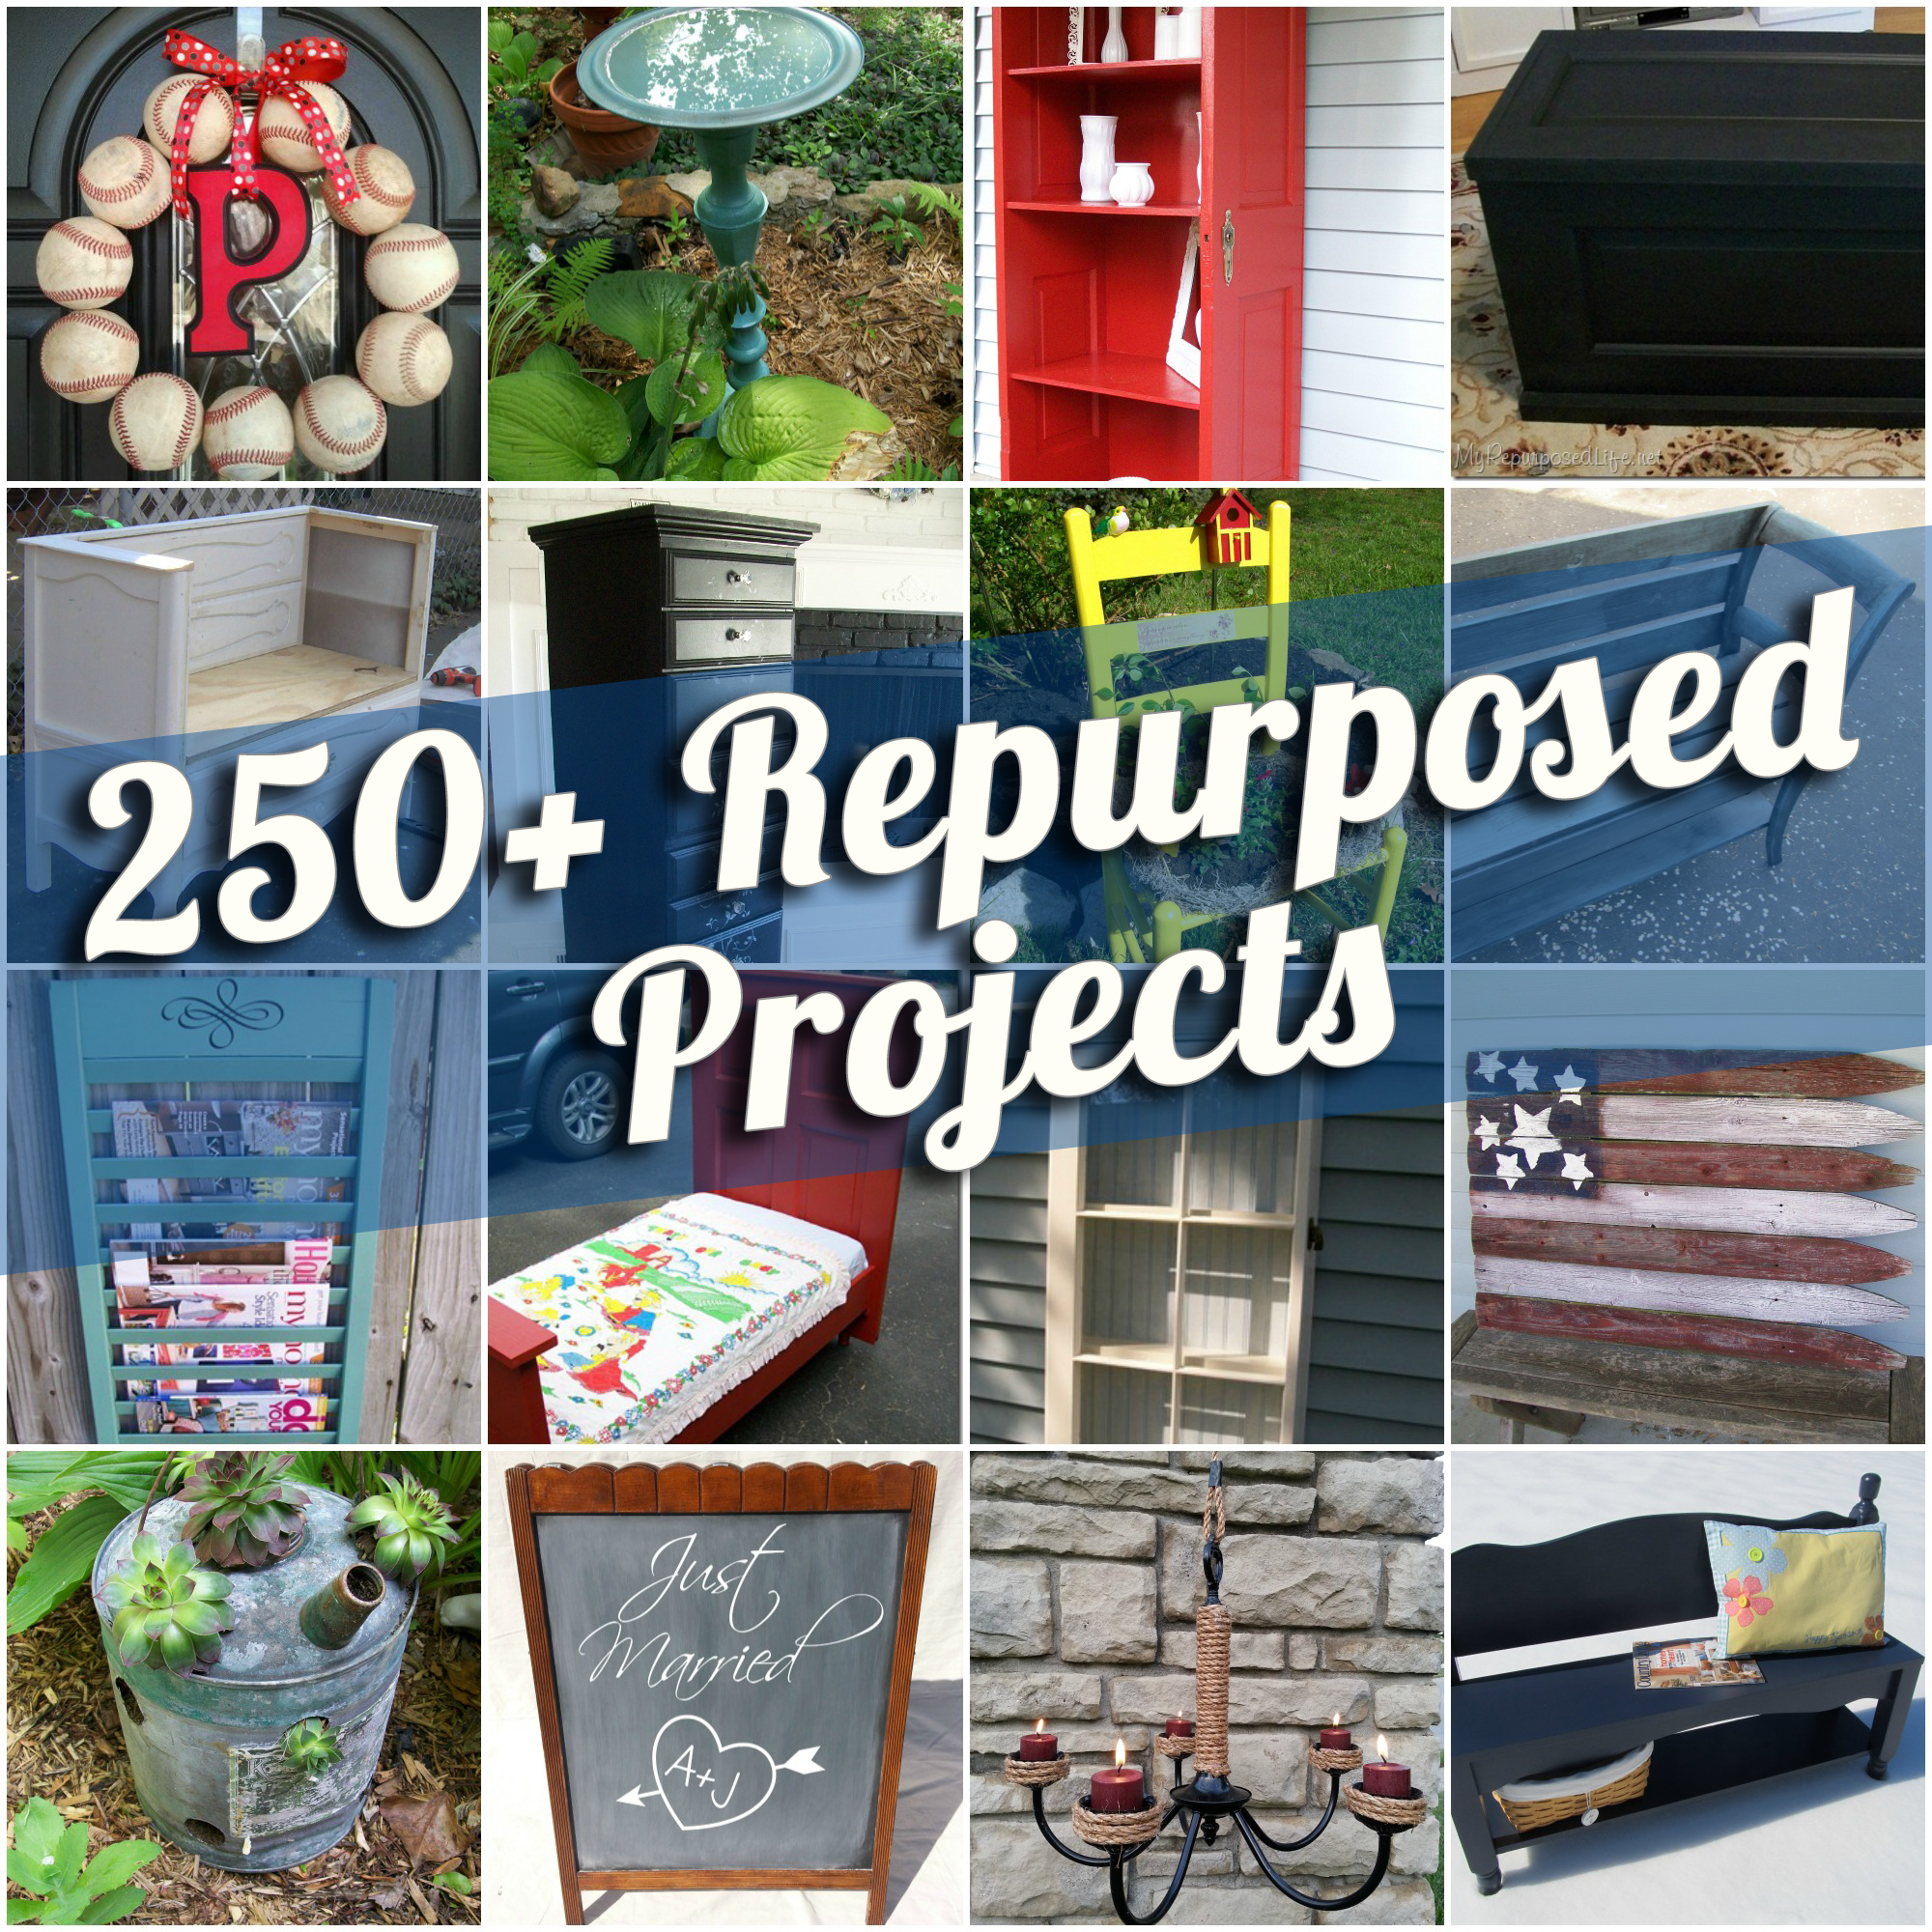 Diy Repurposed Furniture Ideas 250+ repurposed projects